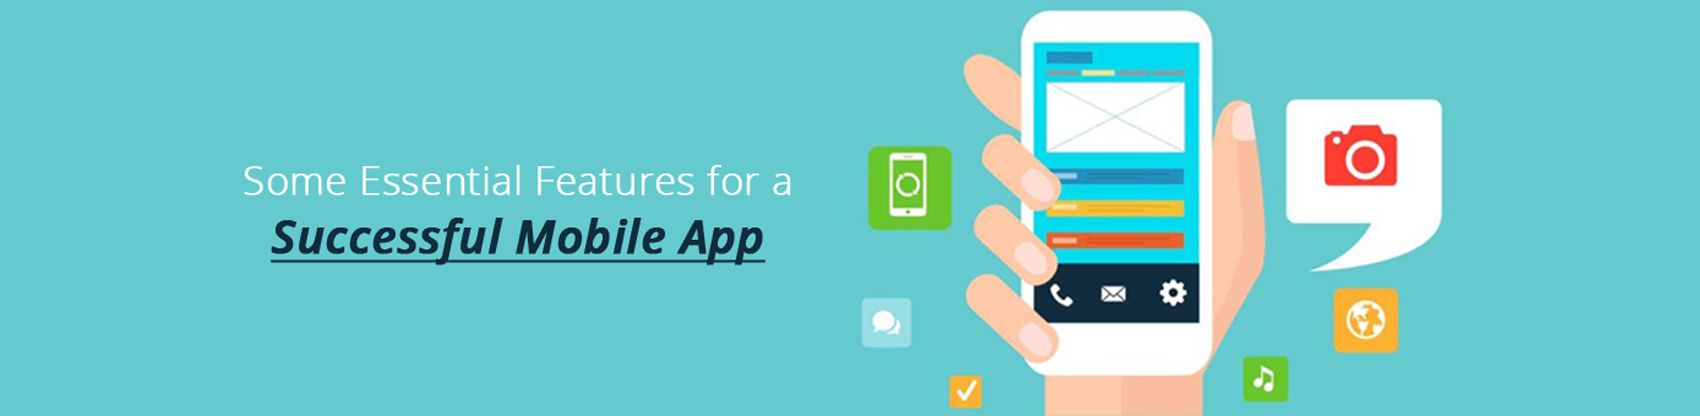 Some Essential Features for a Successful Mobile App